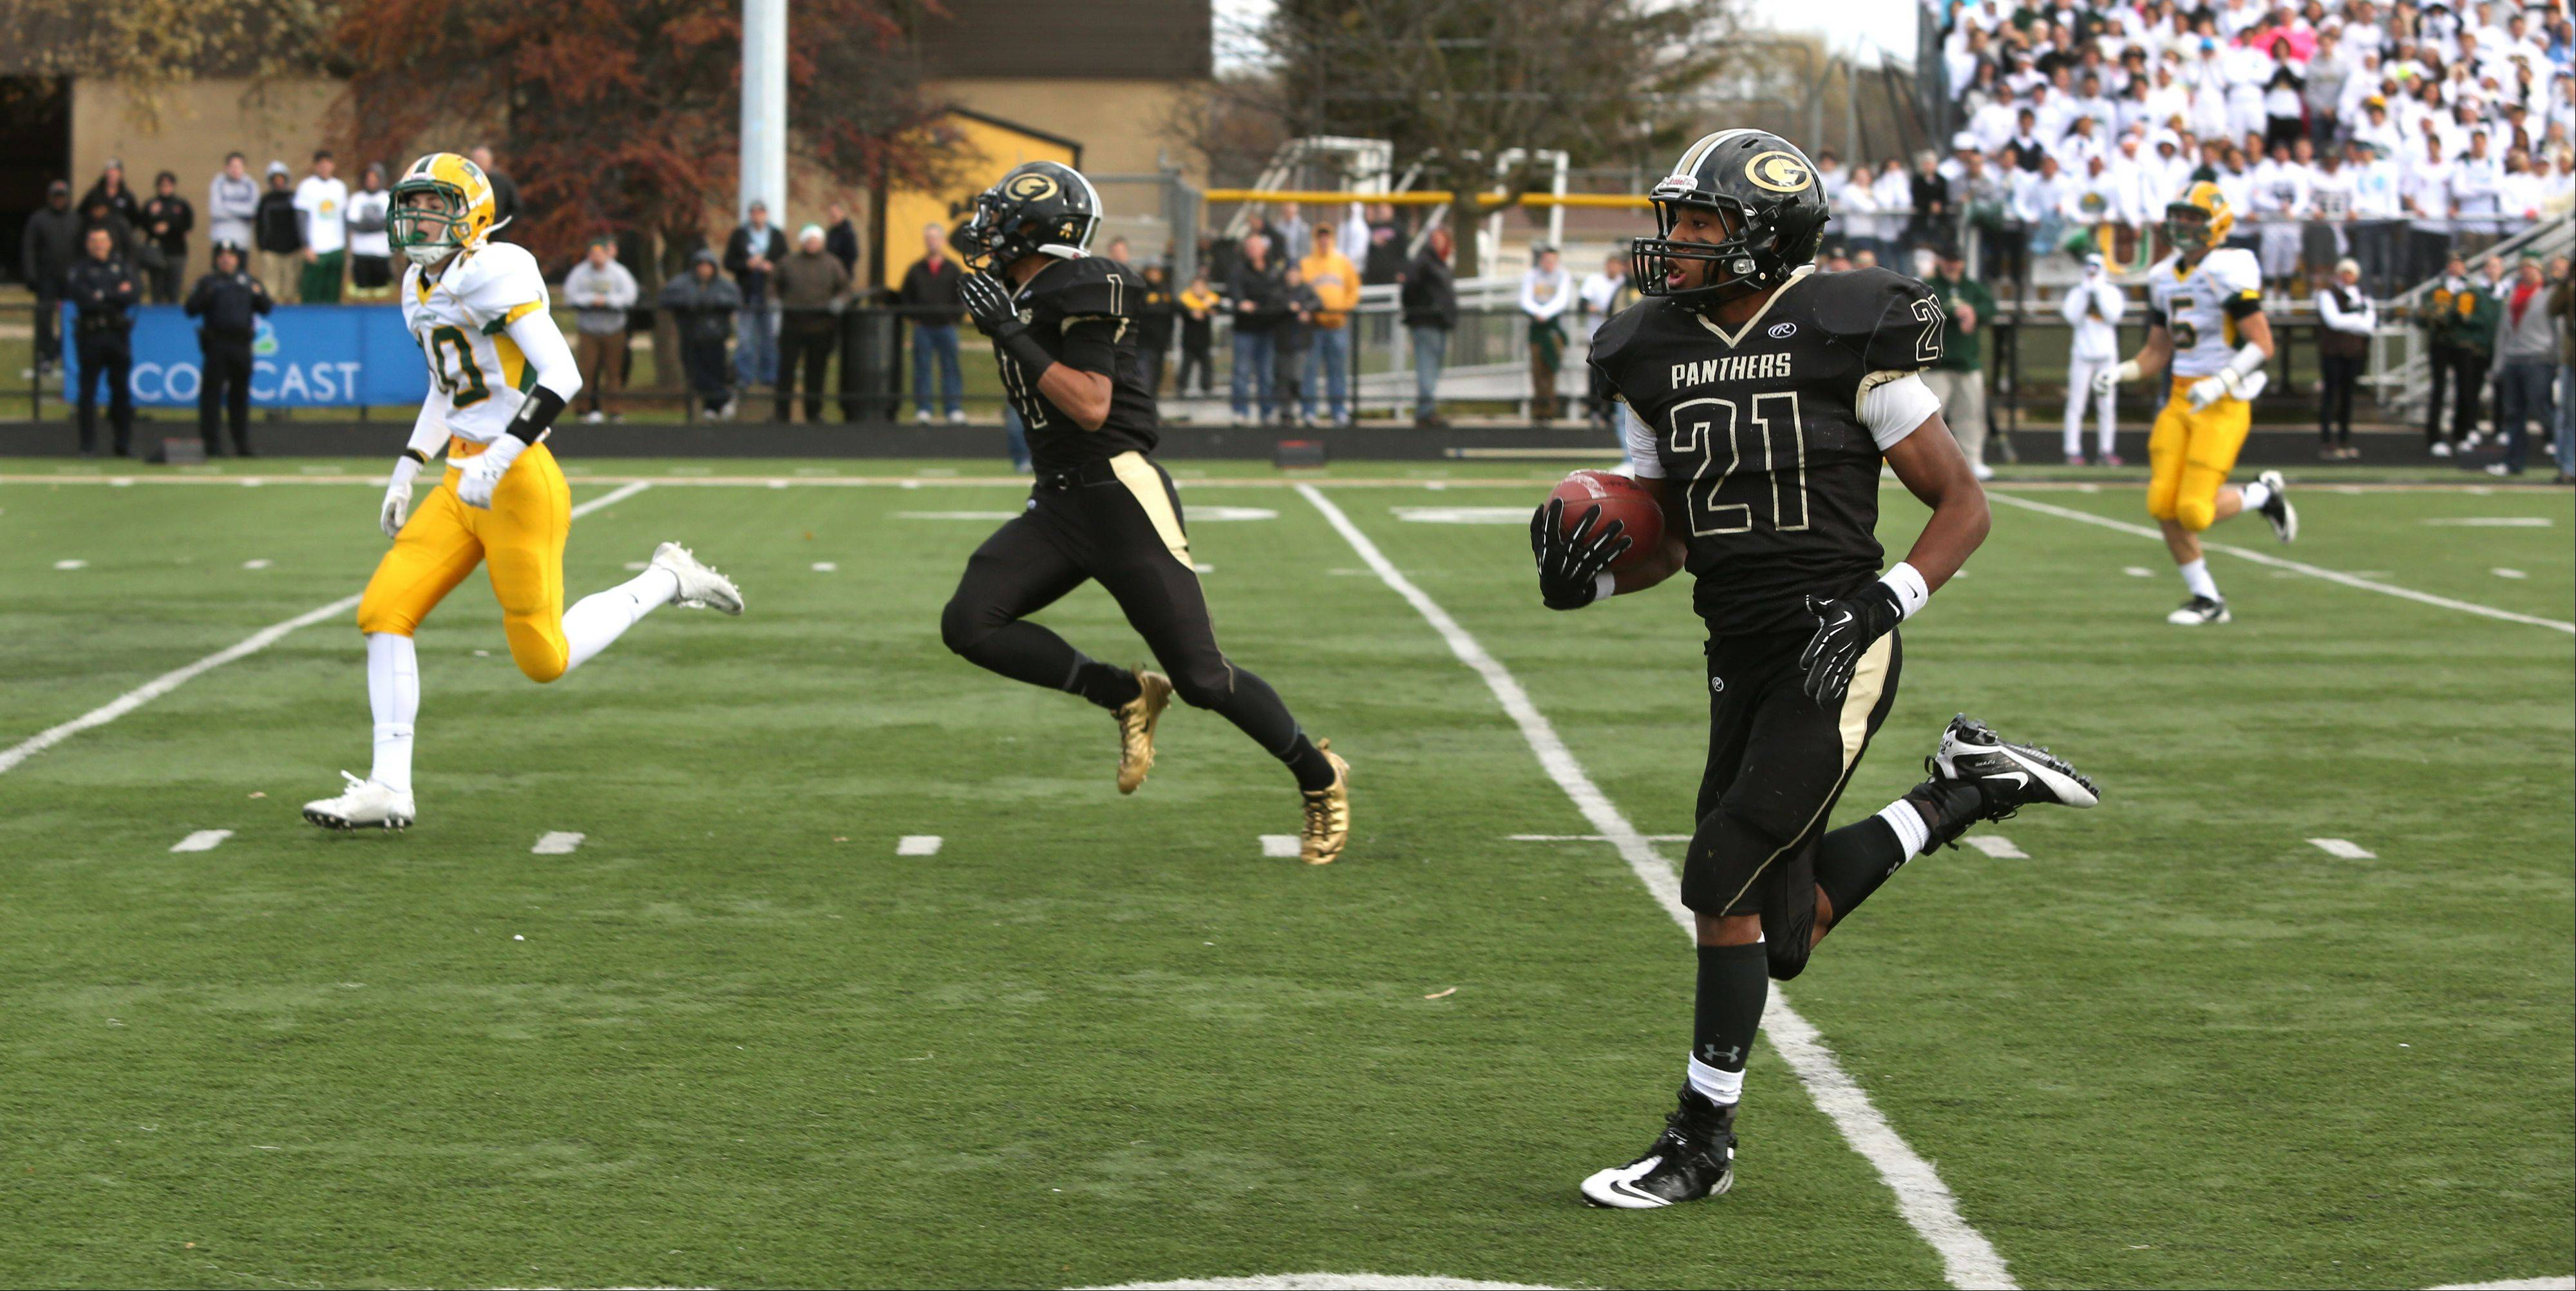 Glenbard North's Justin Jackson eyes the end zone for one of his two touchdown runs on the day.